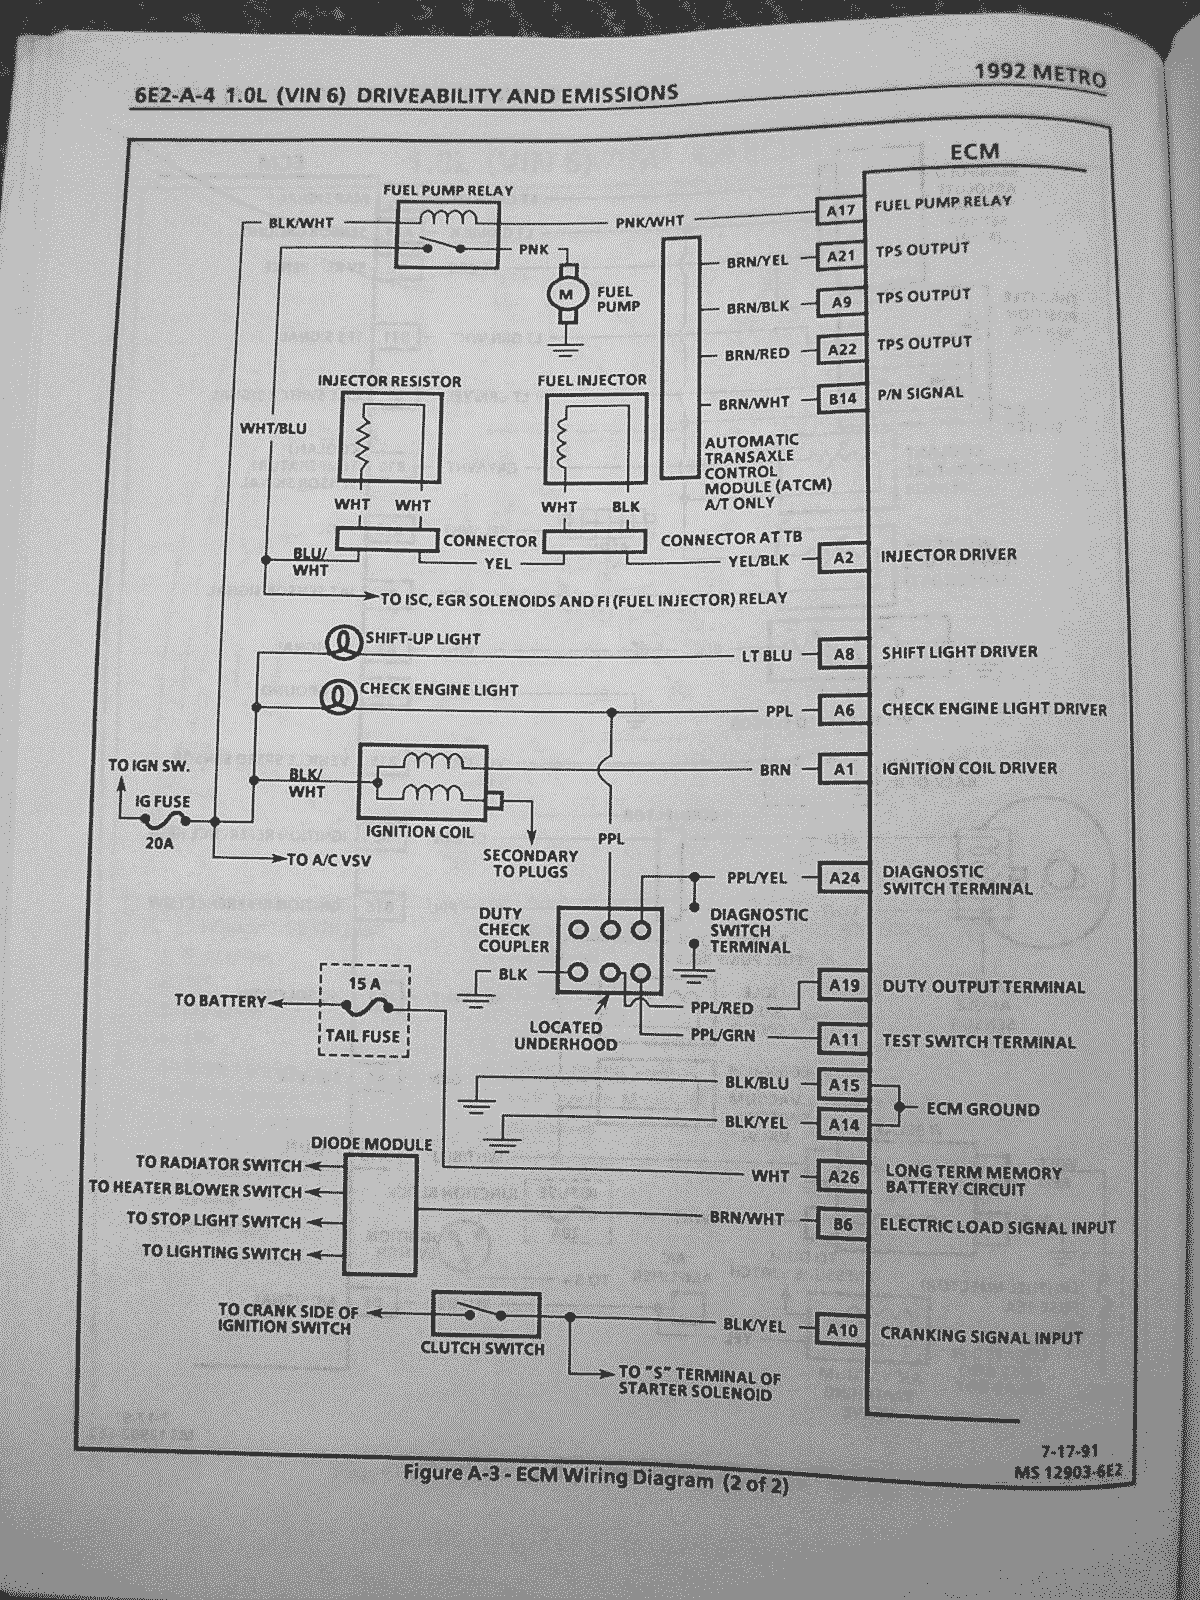 Geo Metro Wiring Diagram: Geo Metro and Suzuki Swift Wiring Diagrams u2013 MetroXFi.com,Design